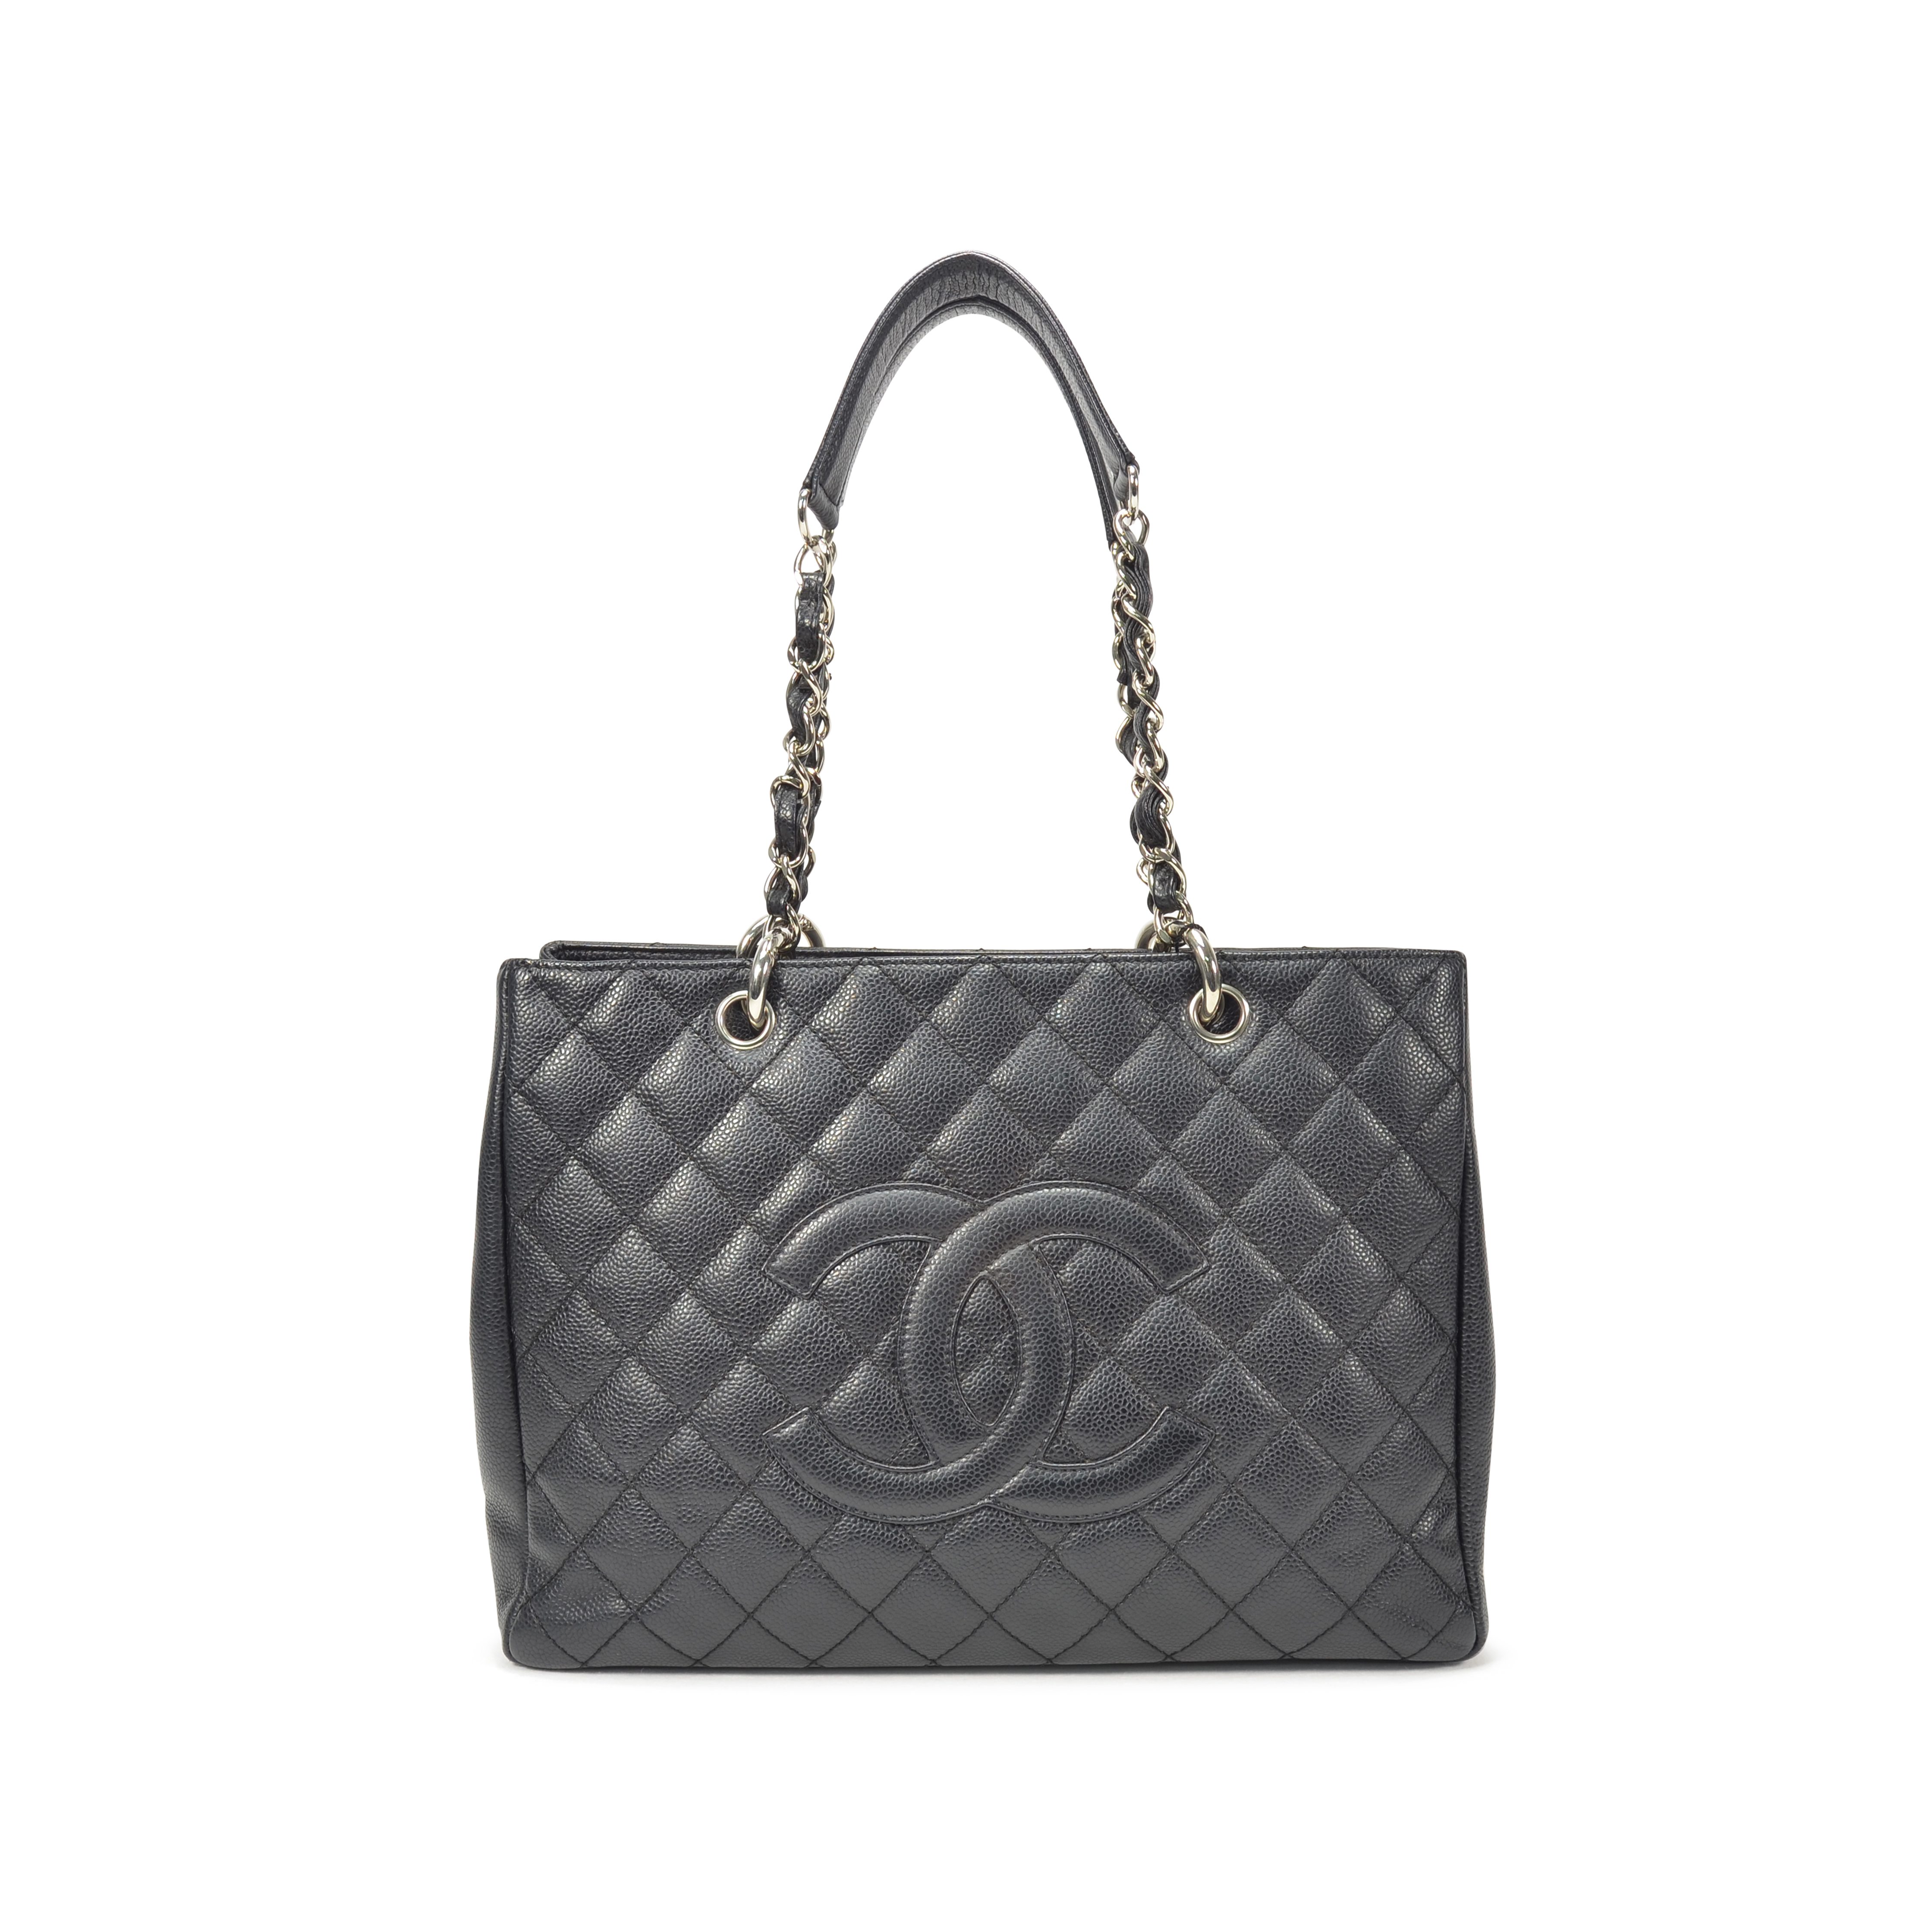 5cd4ded0a244 Authentic Second Hand Chanel Black Grand Shopping Tote Bag (PSS-236-00018)  | THE FIFTH COLLECTION